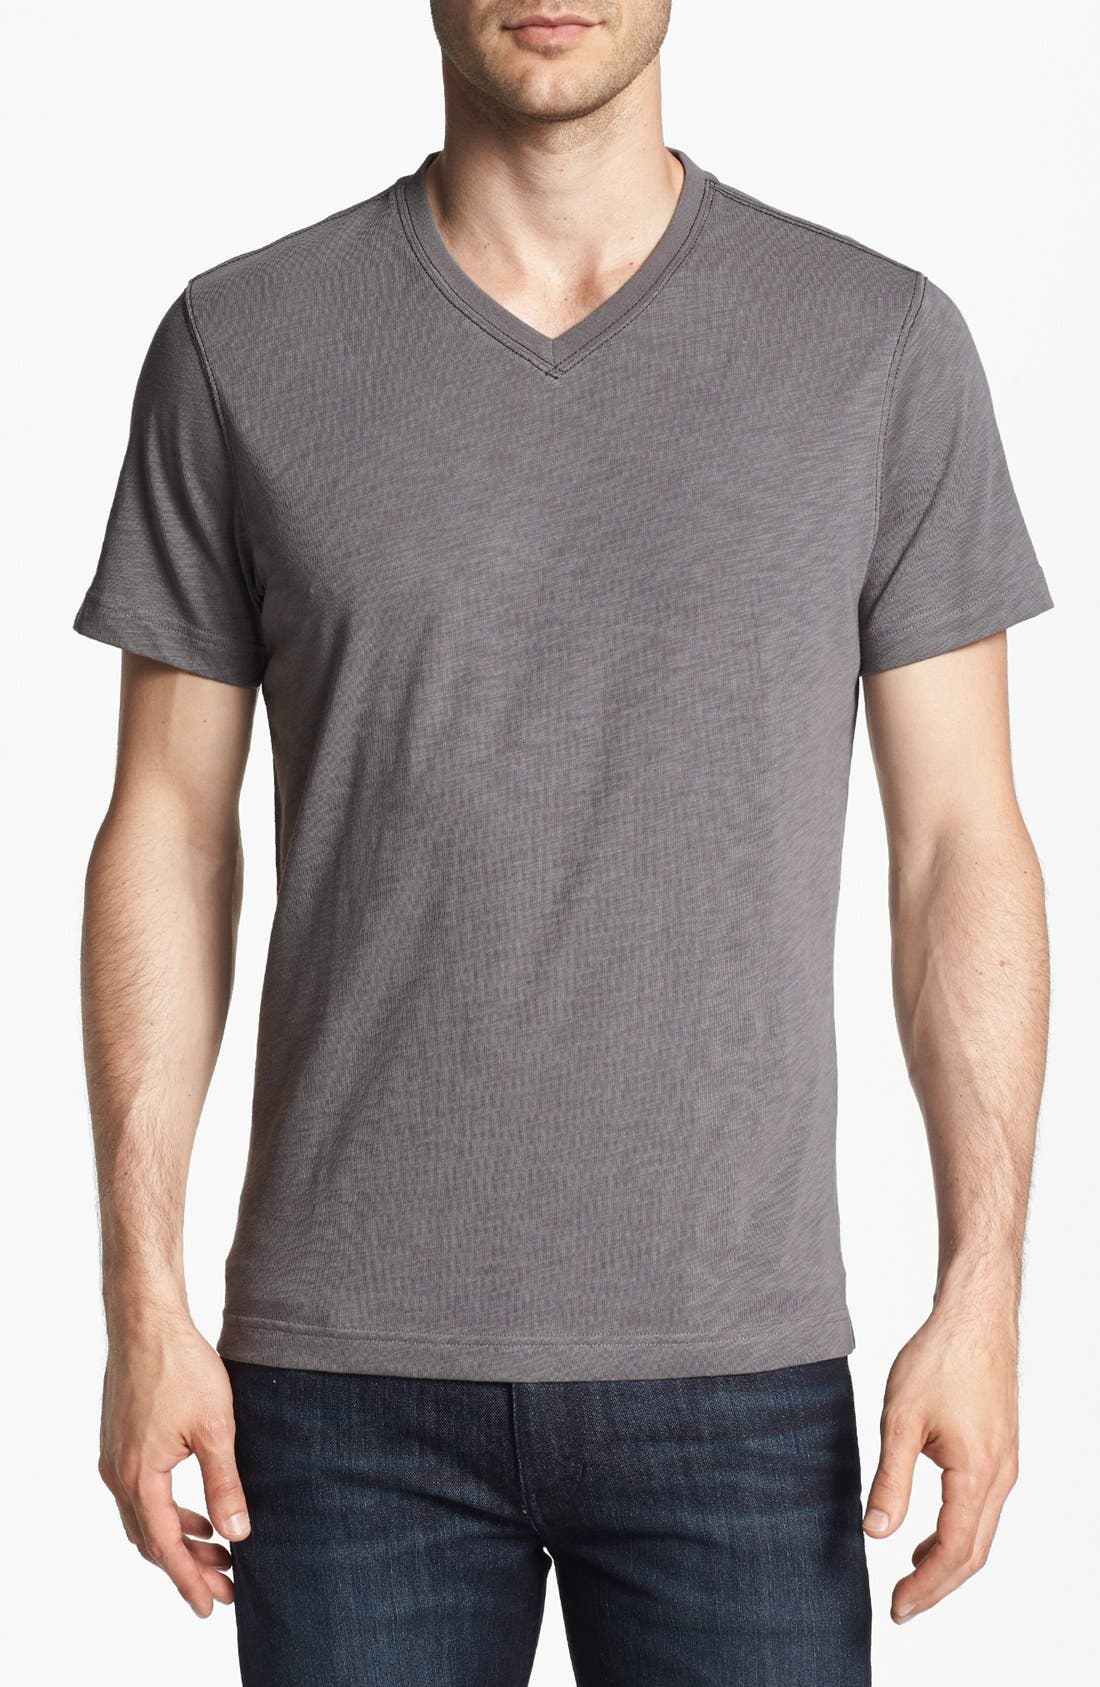 Alternate Image 1 Selected - Robert Barakett 'Miami' V-Neck T-Shirt